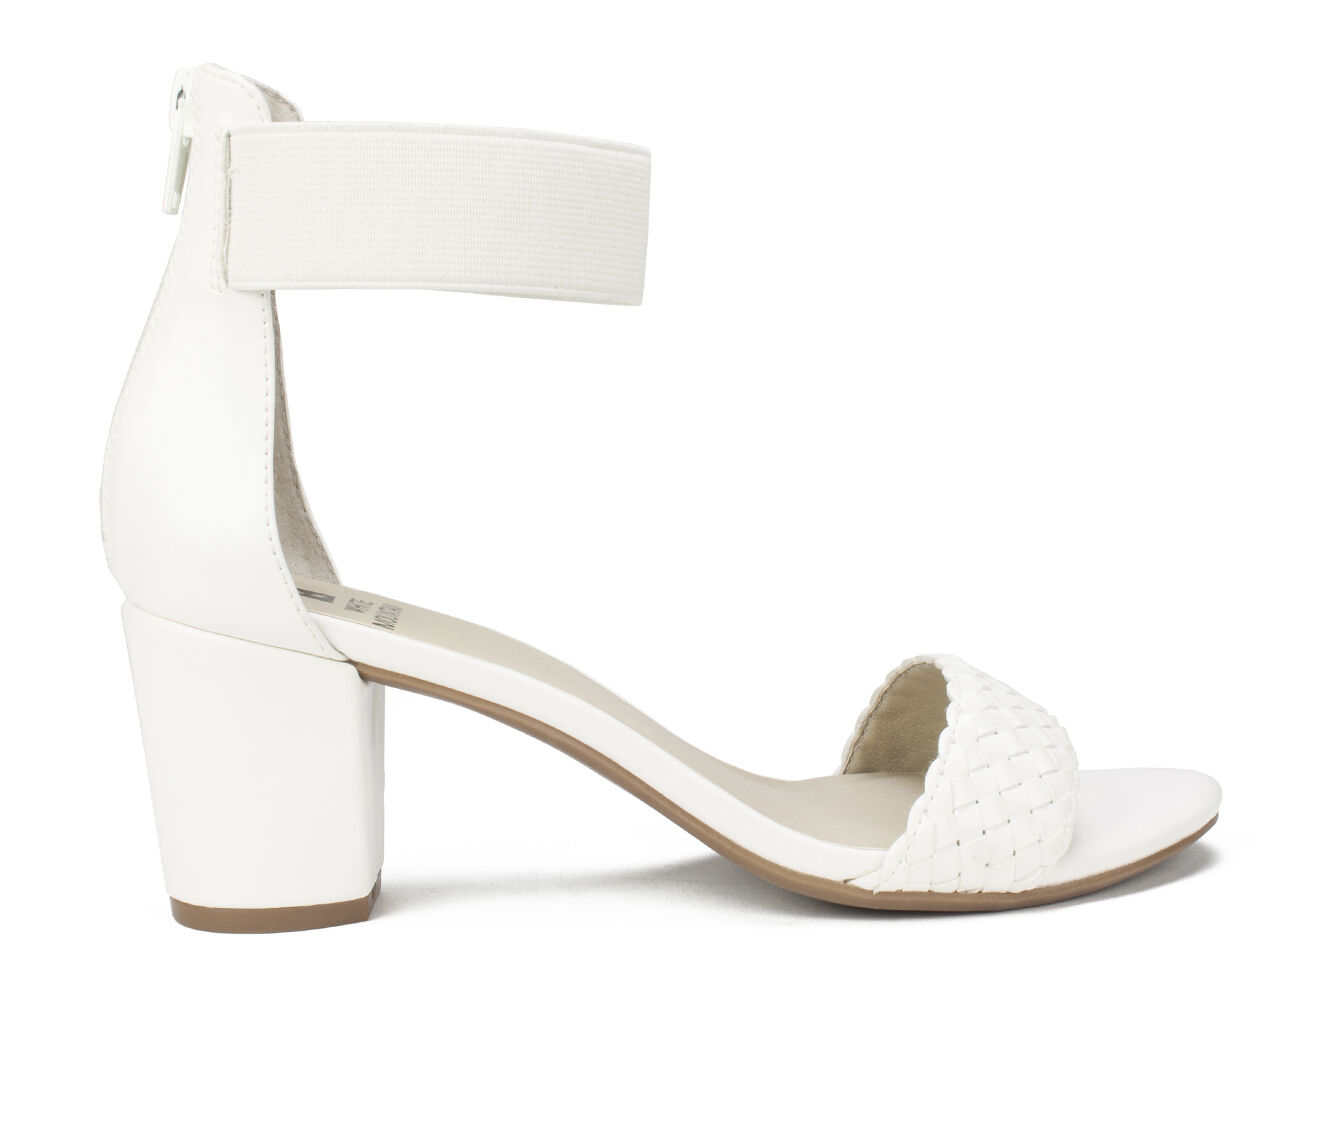 special price Women's White Mountain Eryn Dress Sandals White